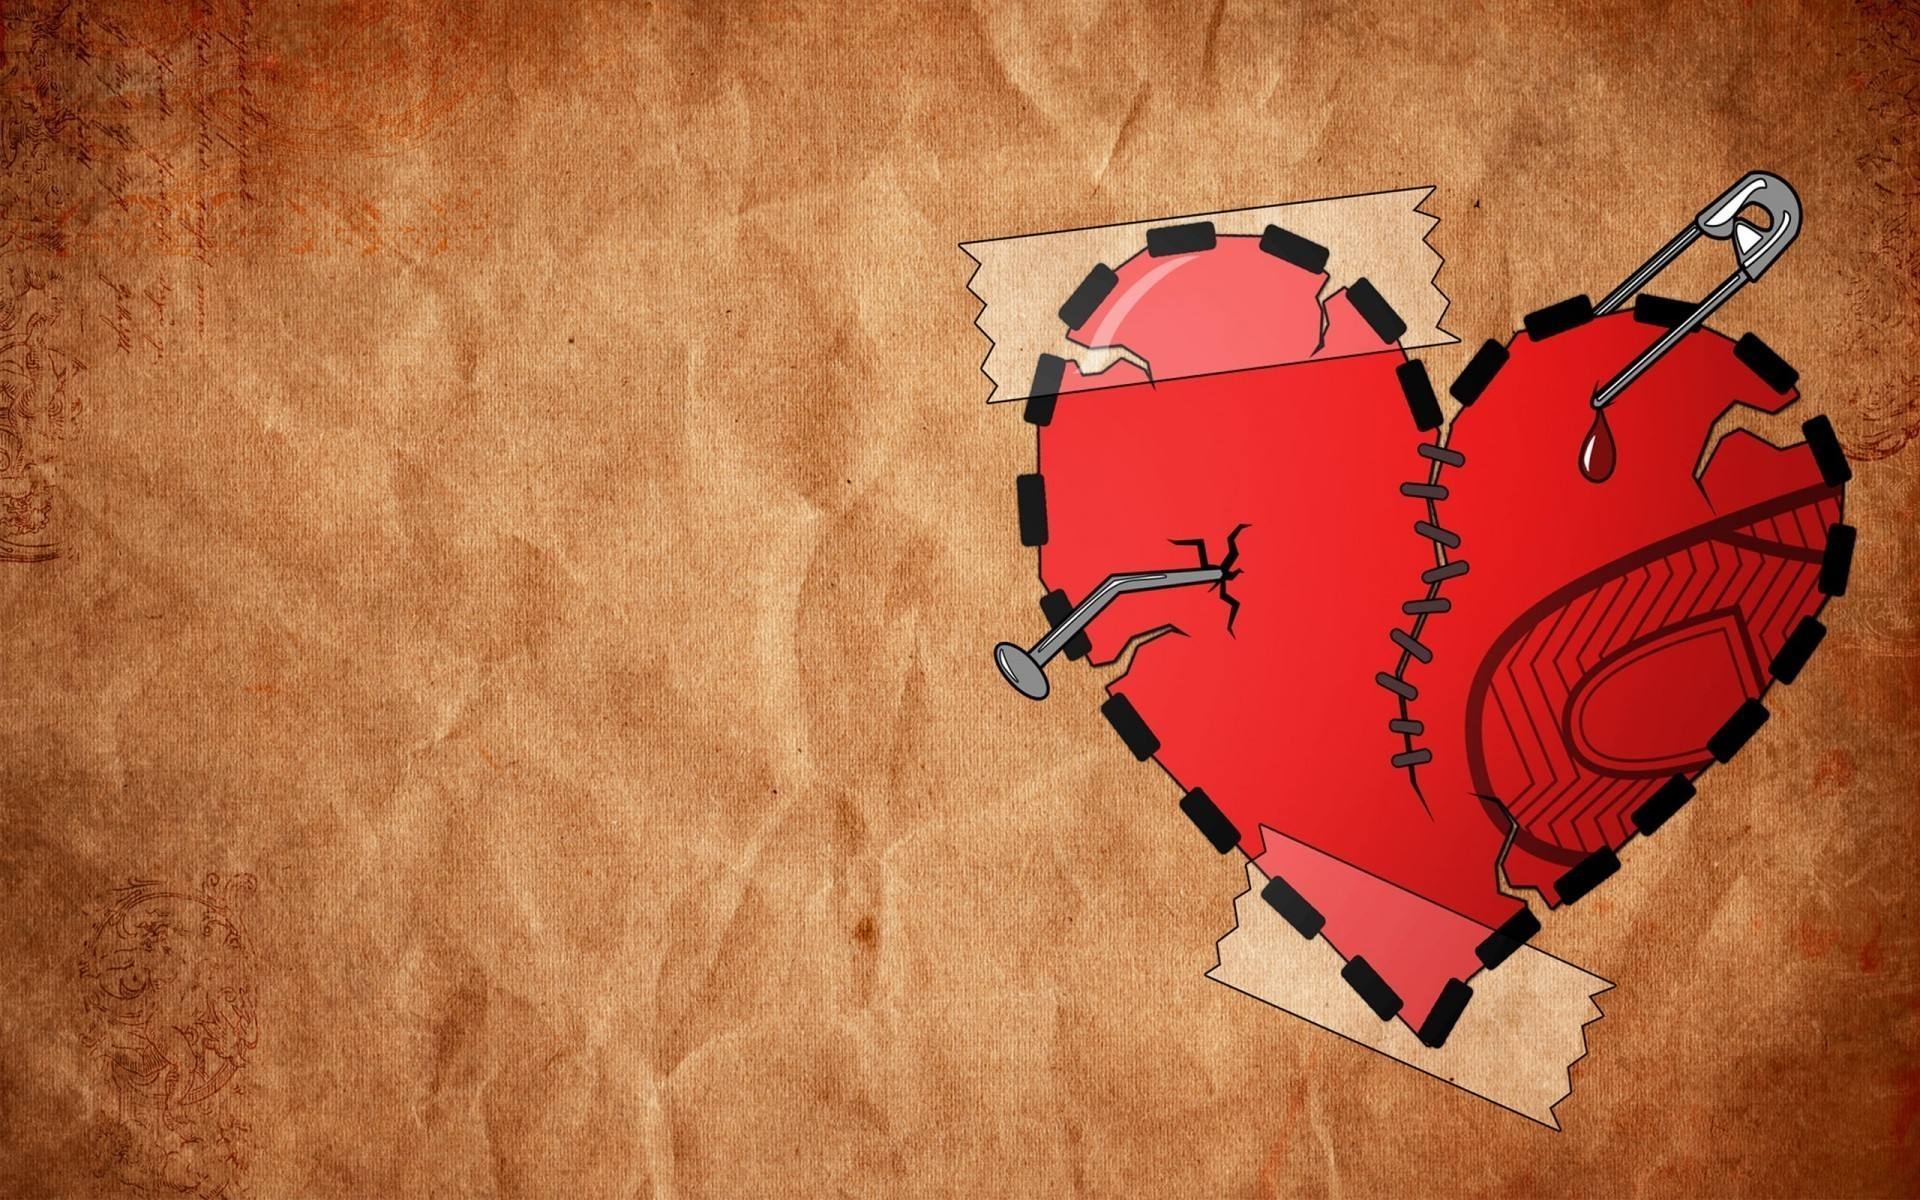 You Make Me Broken Heart Hd Free Wallpapers 1920x1080